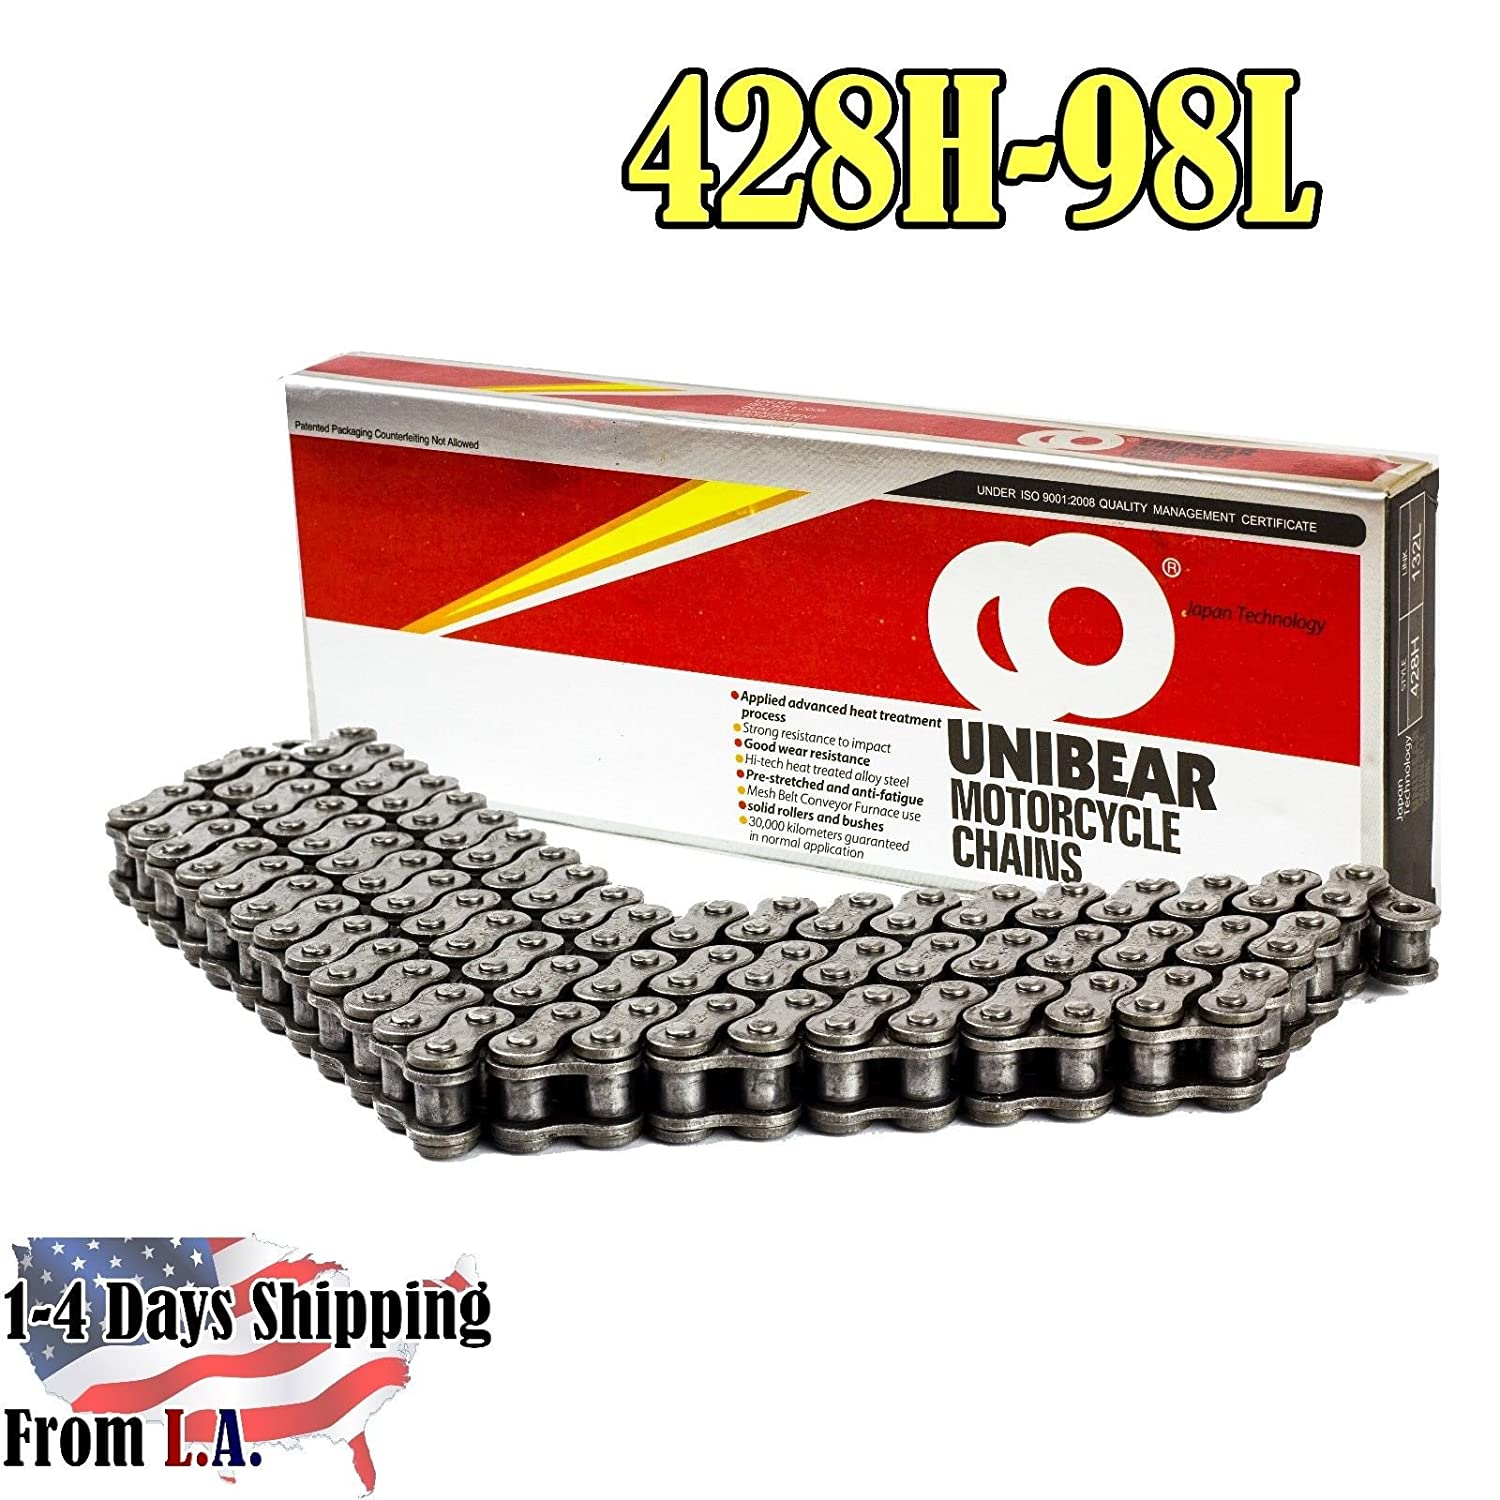 Heavy Duty Unibear 428H 98 Links Motorcycle Chain with Connecting Link Natural Color 428H-98L Japan Technology,Wear Resistance